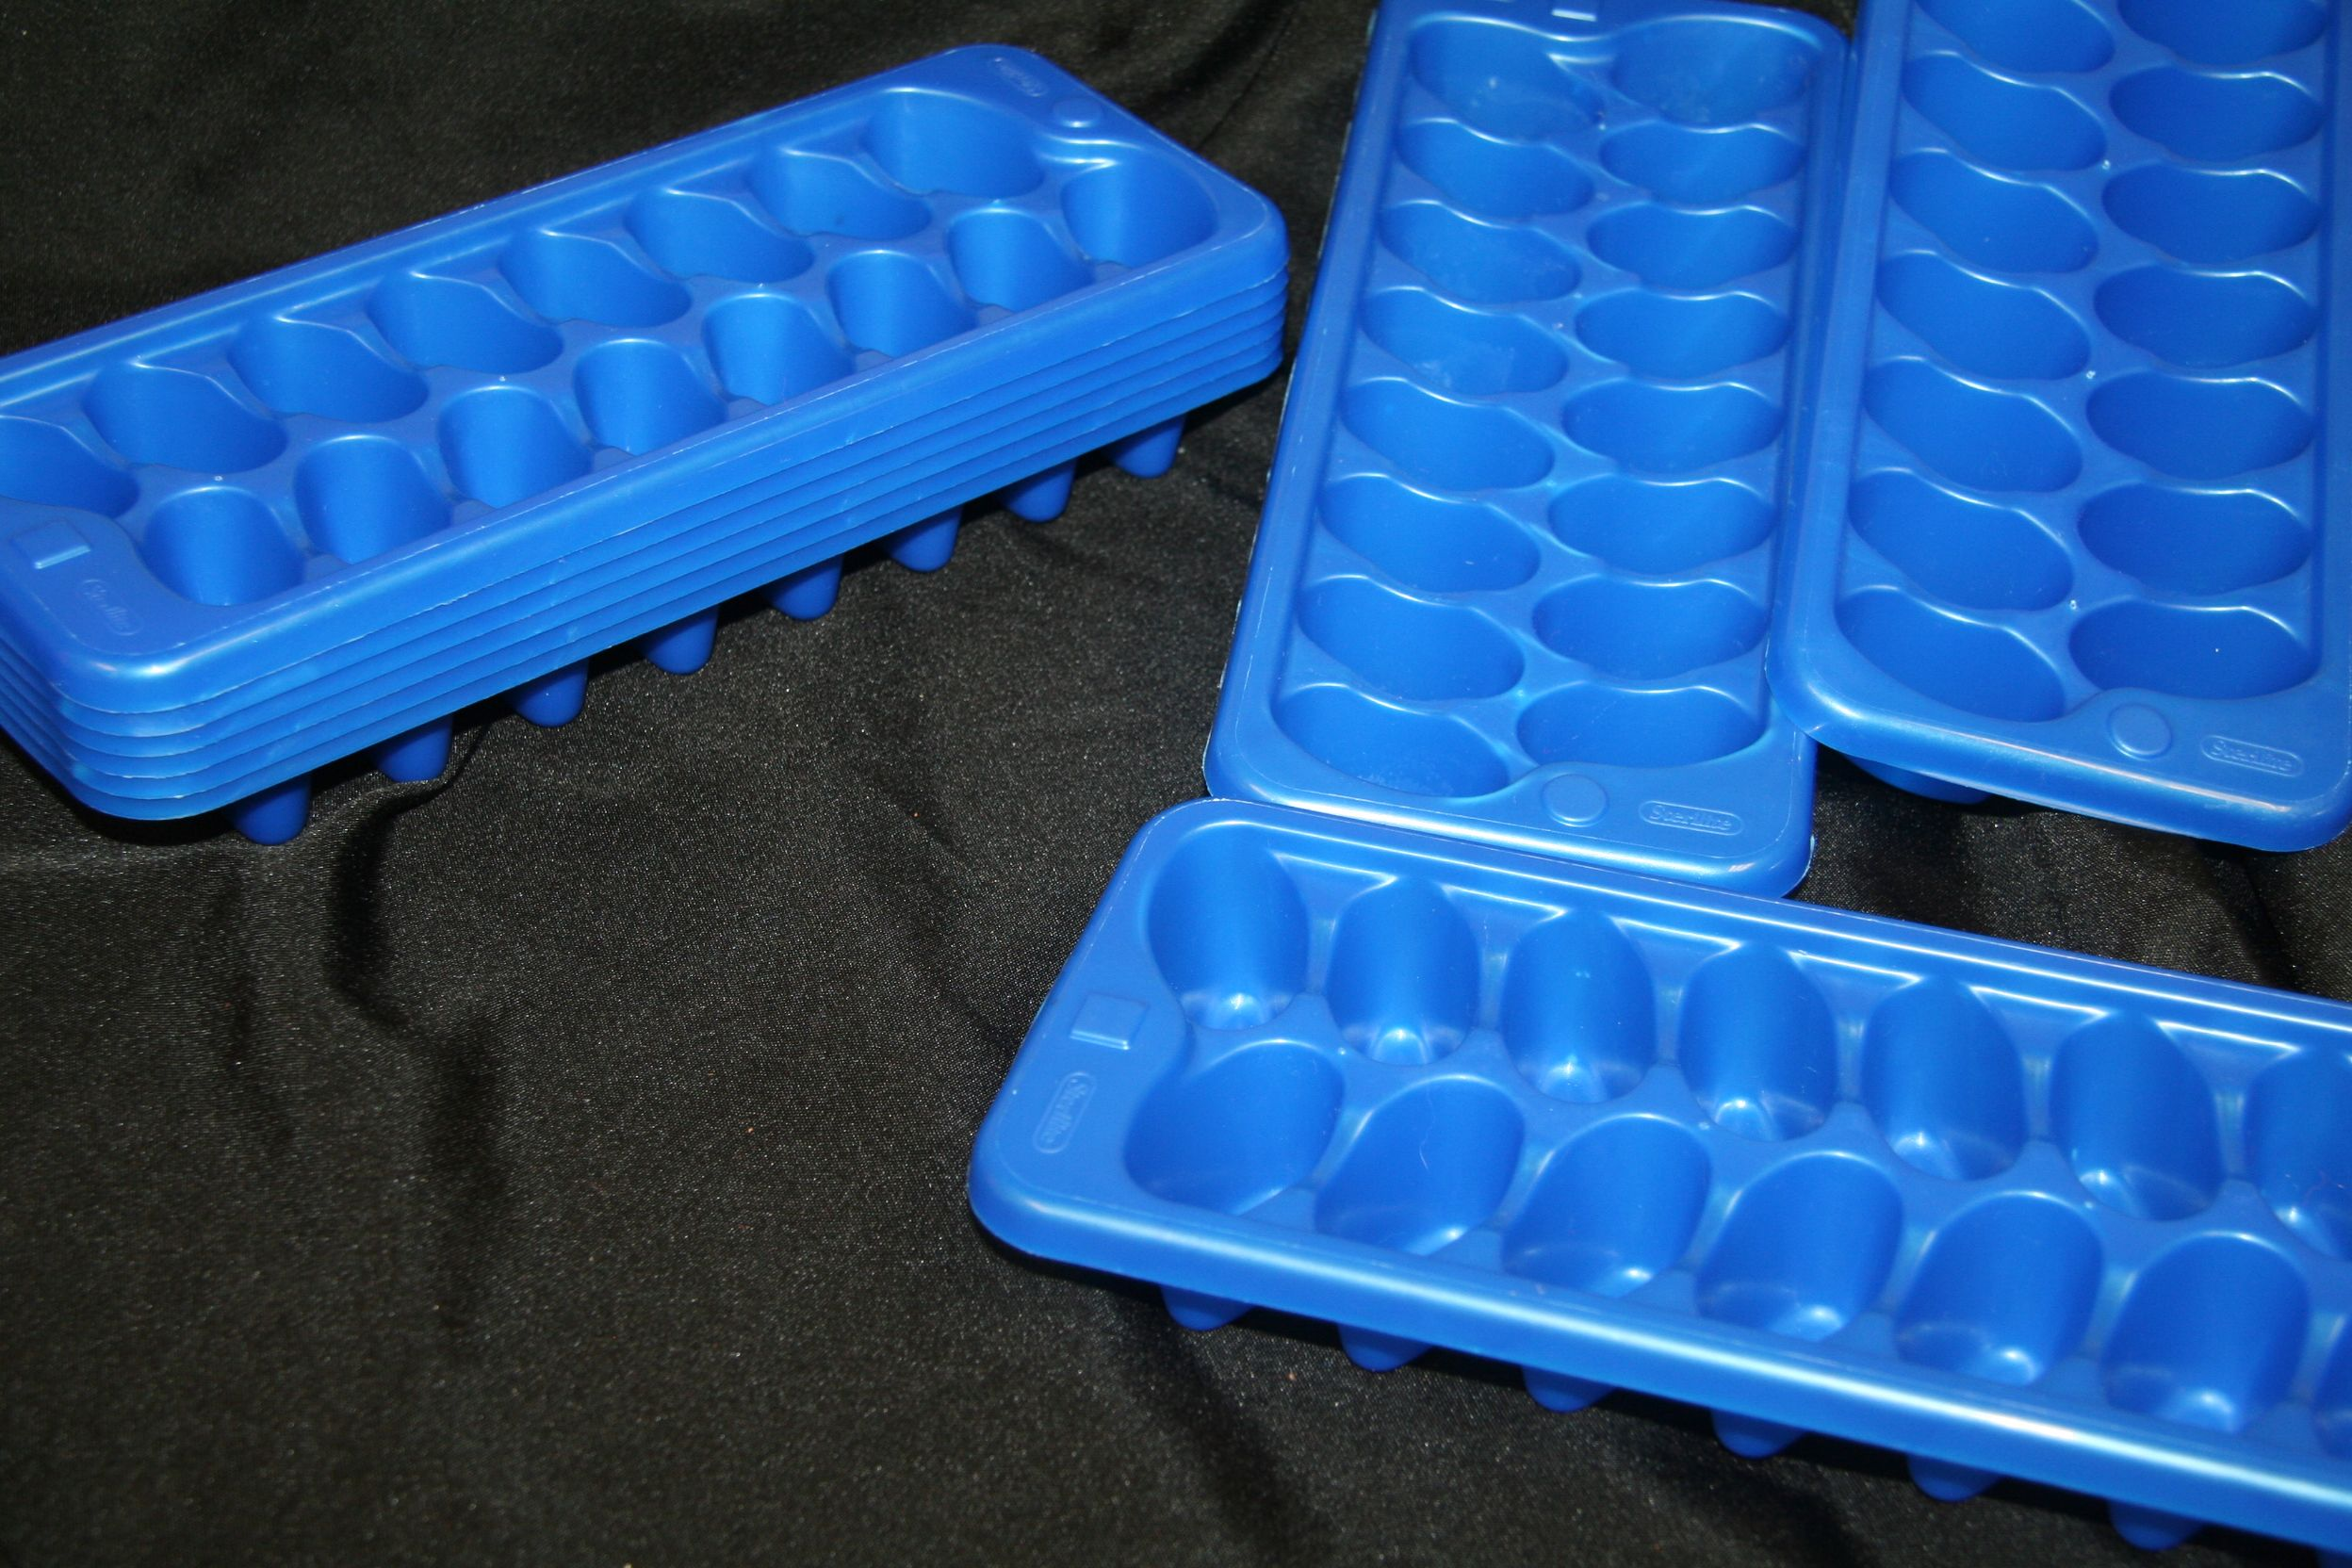 Ice Trays Sorting Counting One To One Correspondence